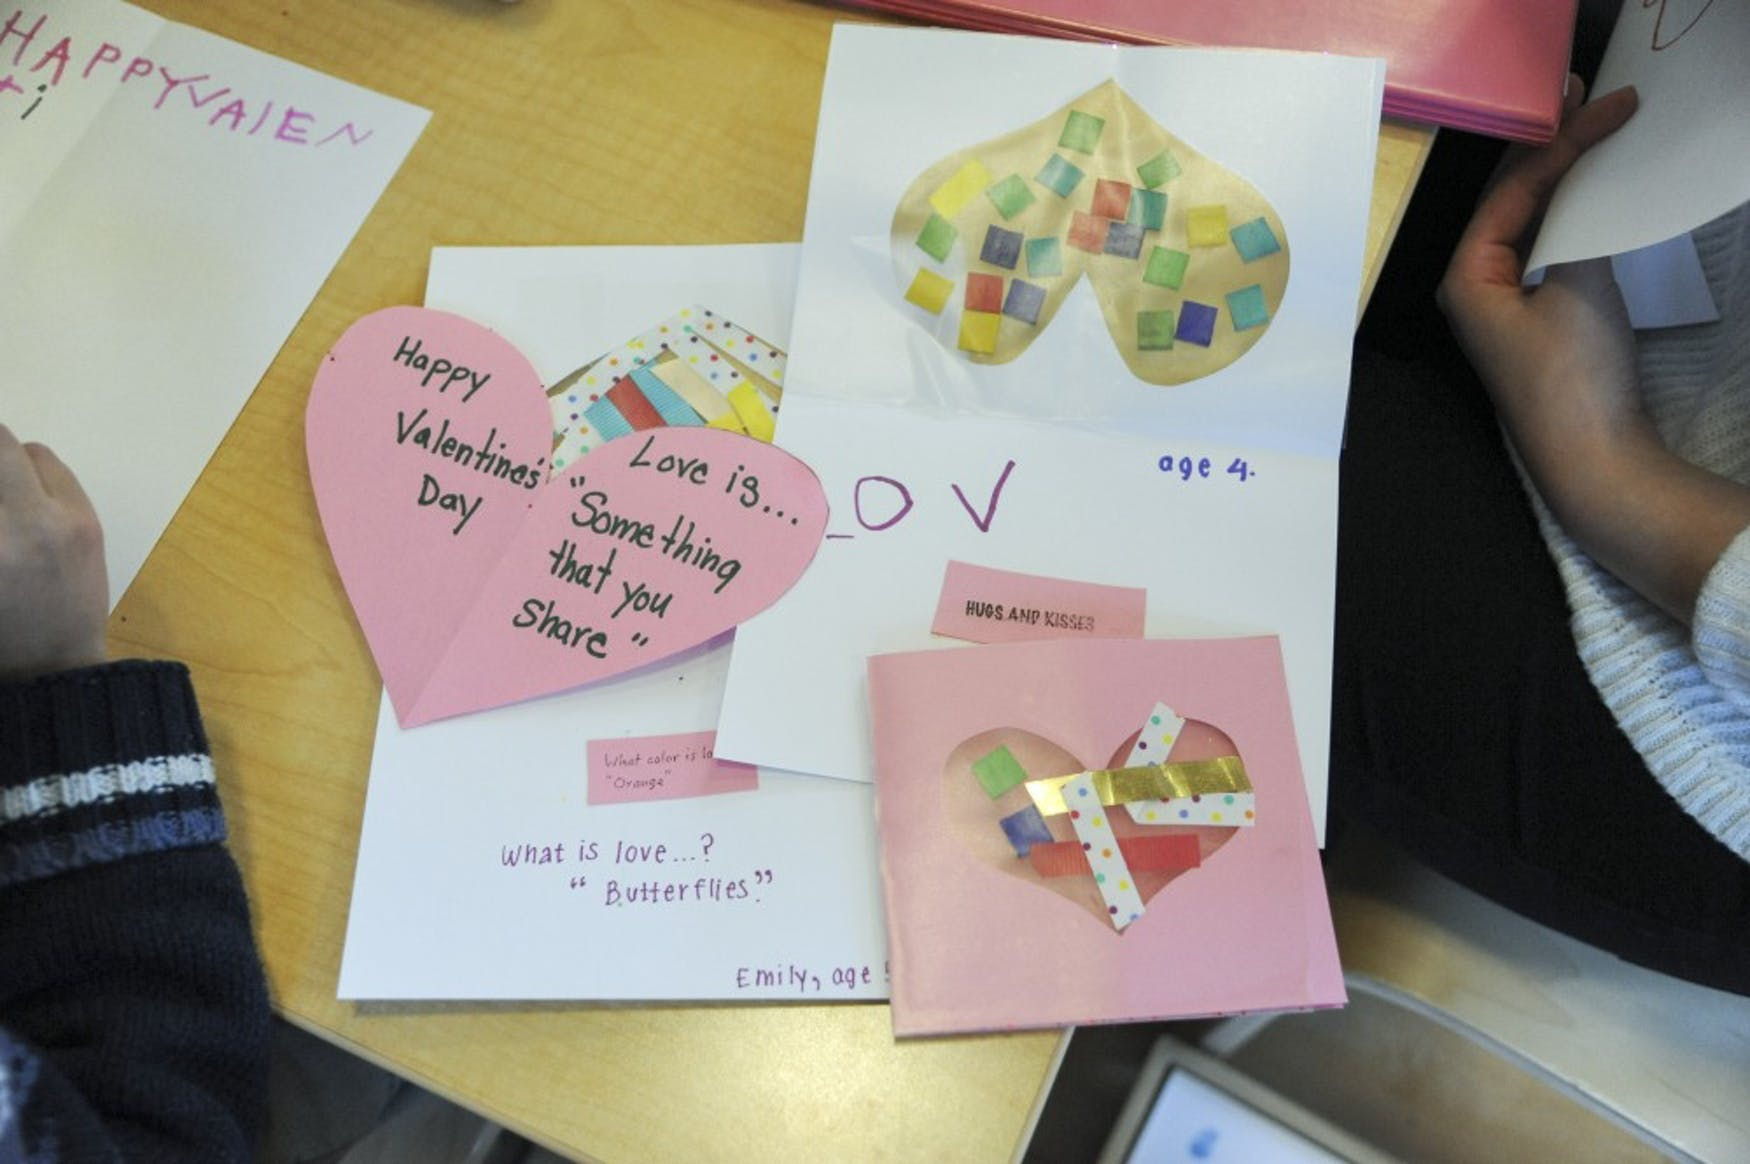 Some samples: Teachers work closely with the preschoolers to help them understand Valentine's Day and by asking them what they think love is.